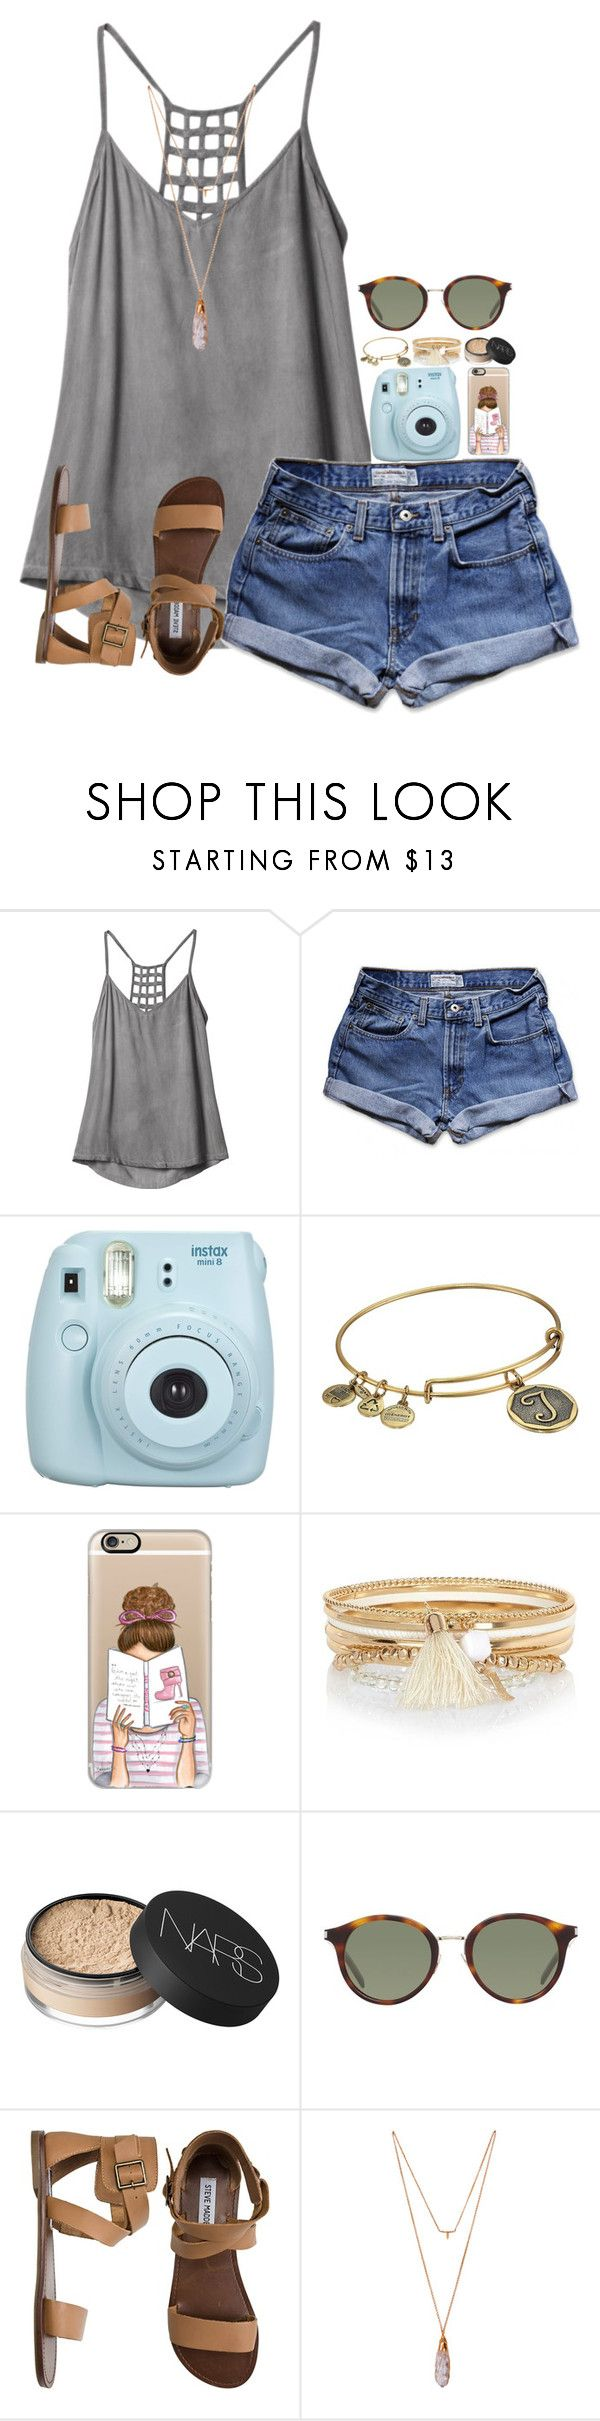 """I made a lot of drafts so I'll be posting those because I m really busy with school lately"" by leawhite ❤ liked on Polyvore featuring RVCA, Abercrombie & Fitch, Fujifilm, Alex and Ani, Casetify, River Island, NARS Cosmetics, Yves Saint Laurent, Steve Madden and Tiffany & Co."